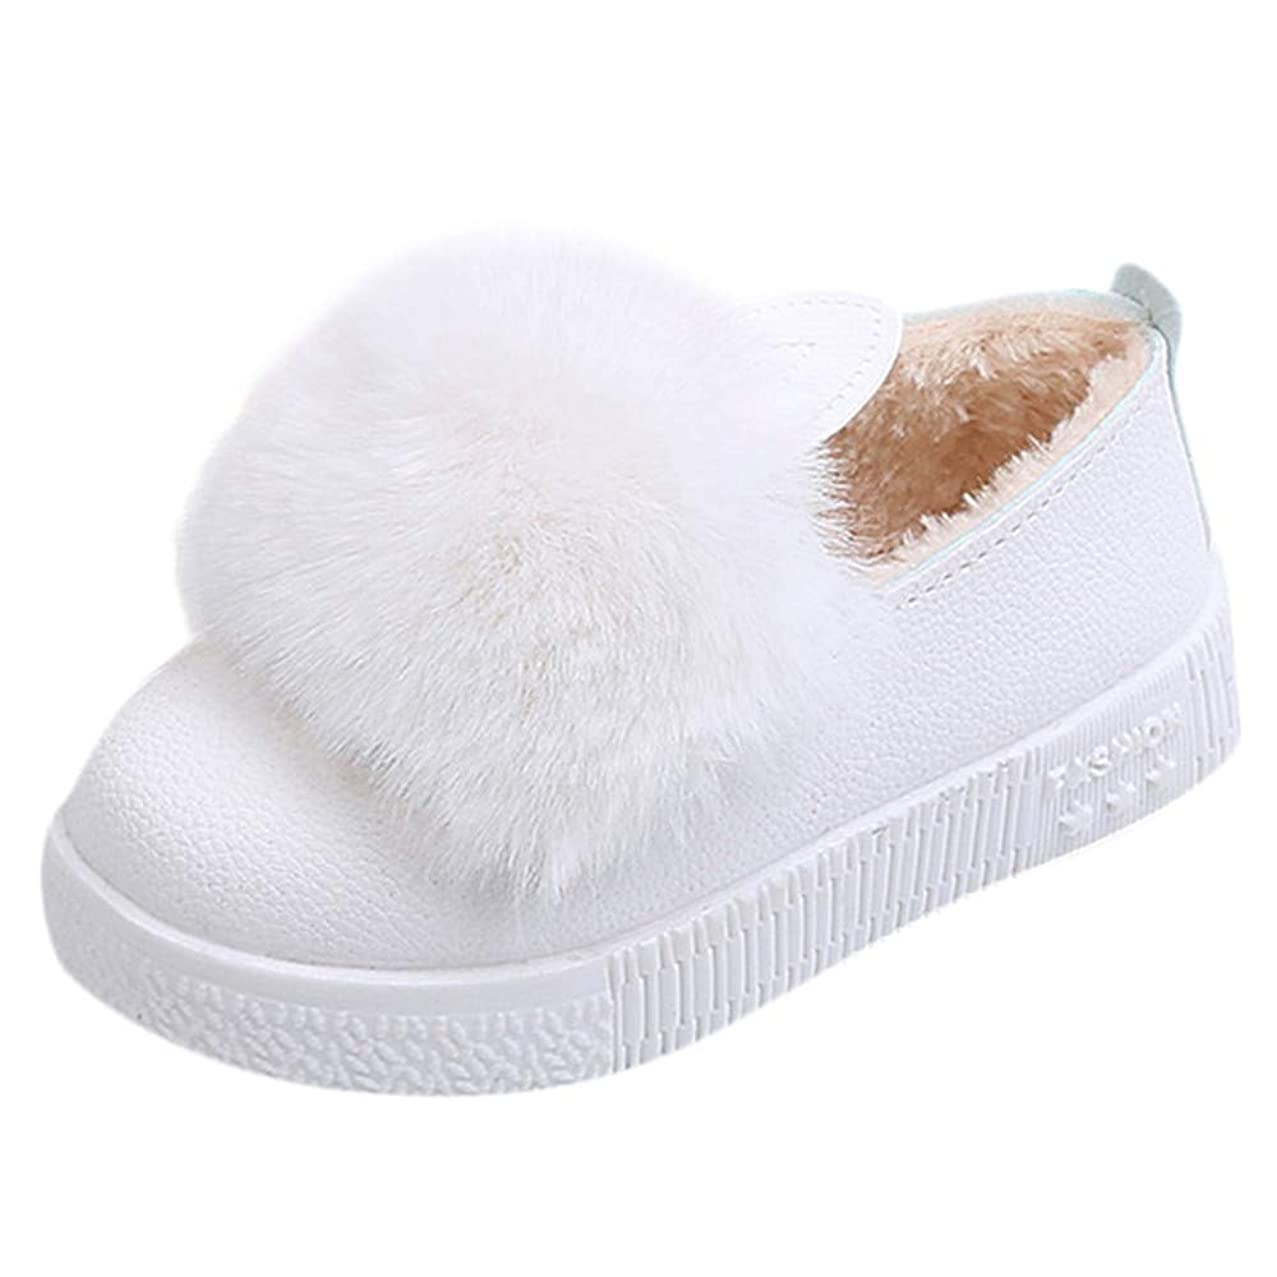 Princess Children Slip-on Lovely Bunny Ears with Pom Warm Shoes, Girls Fur Lined Anti-Slip Fashion Short Boots